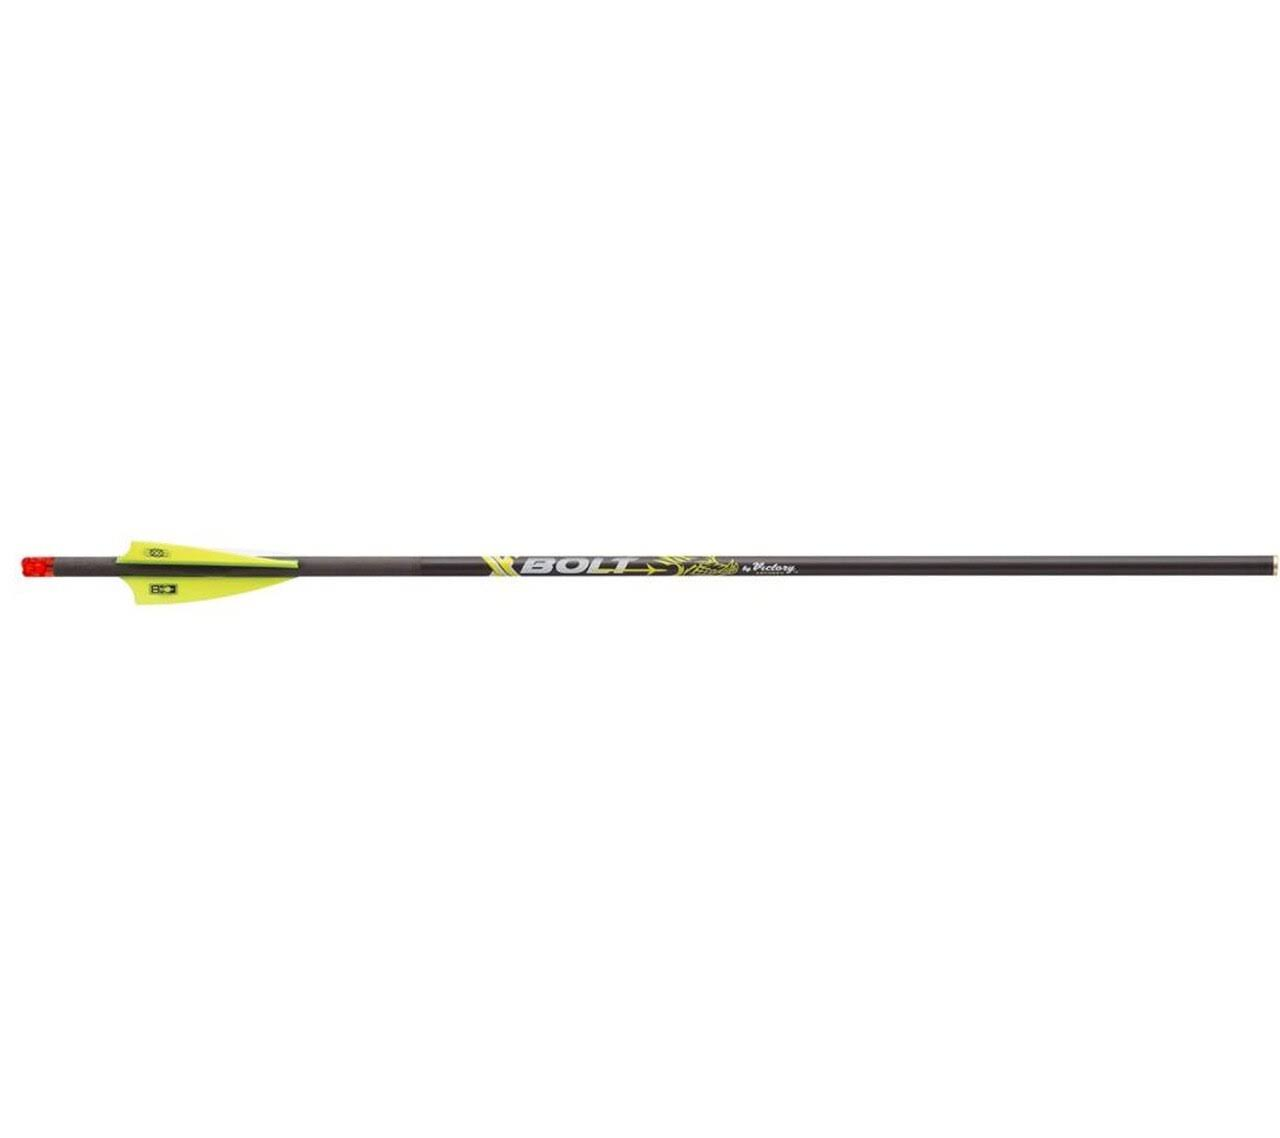 Victory Xbolt Crossbow Bolt 20in. Half Moon Lighted Nock 3 Pk.